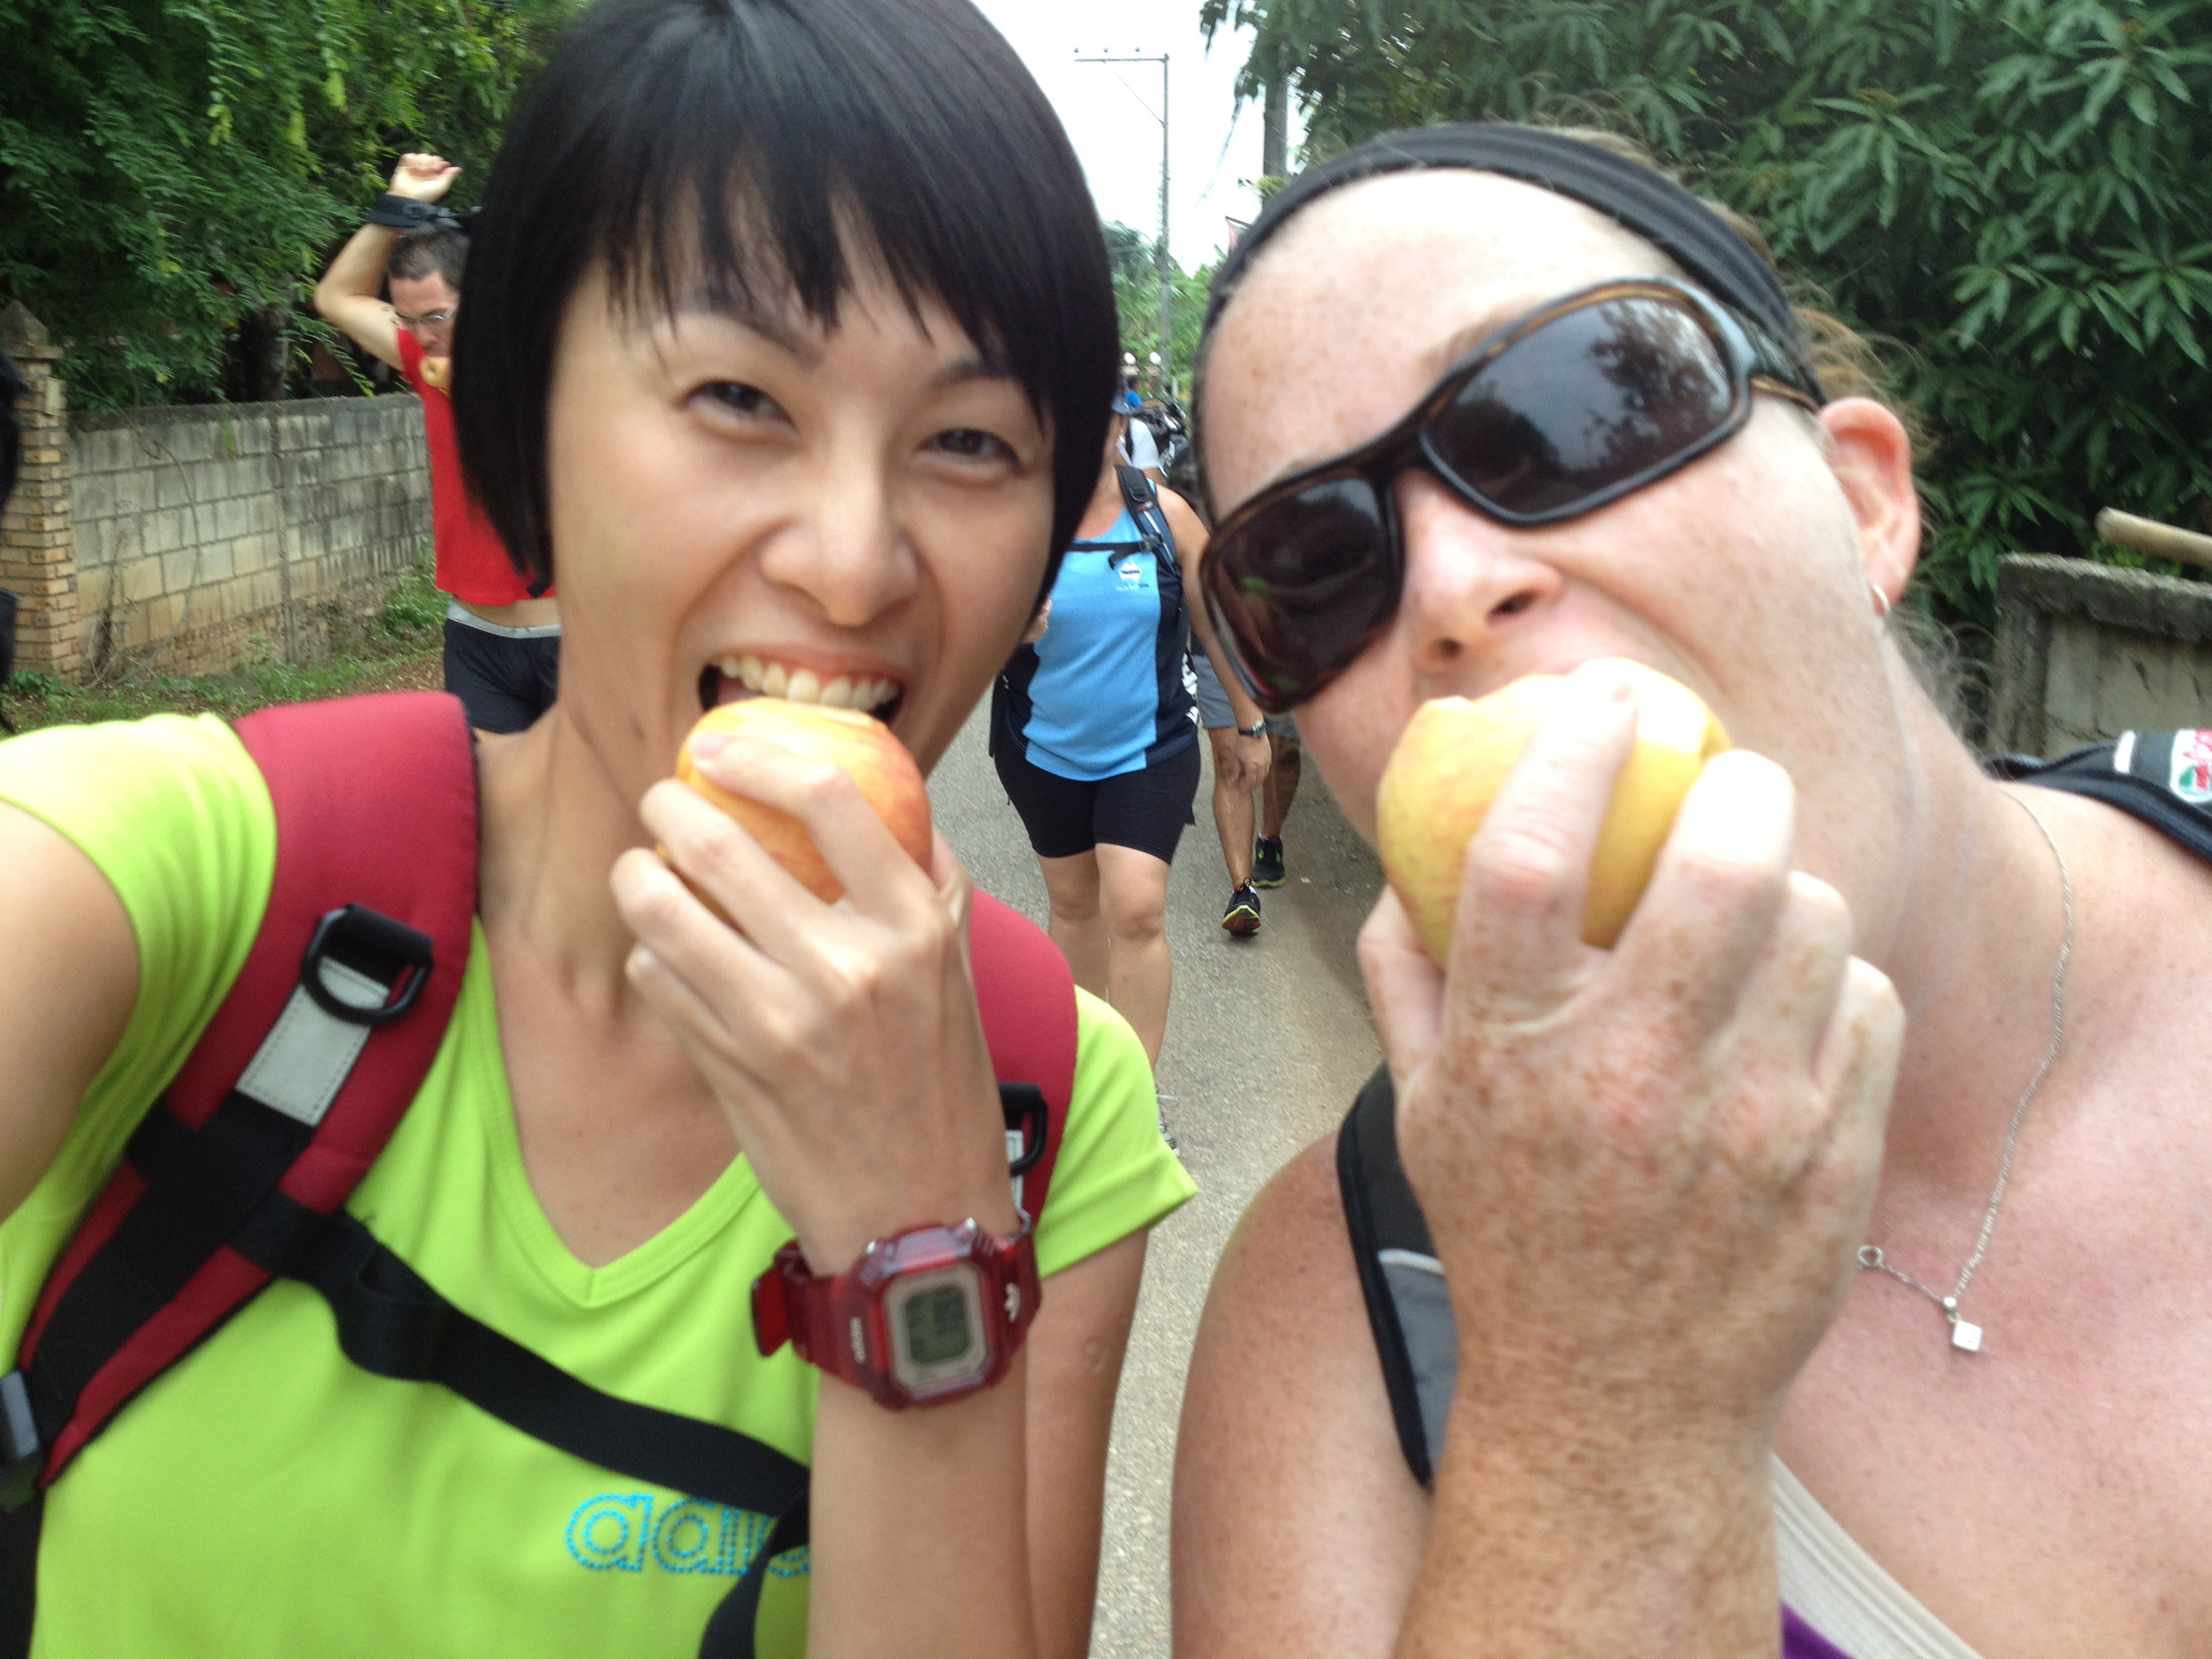 we give out boot camp guests a healthy apple snack each day